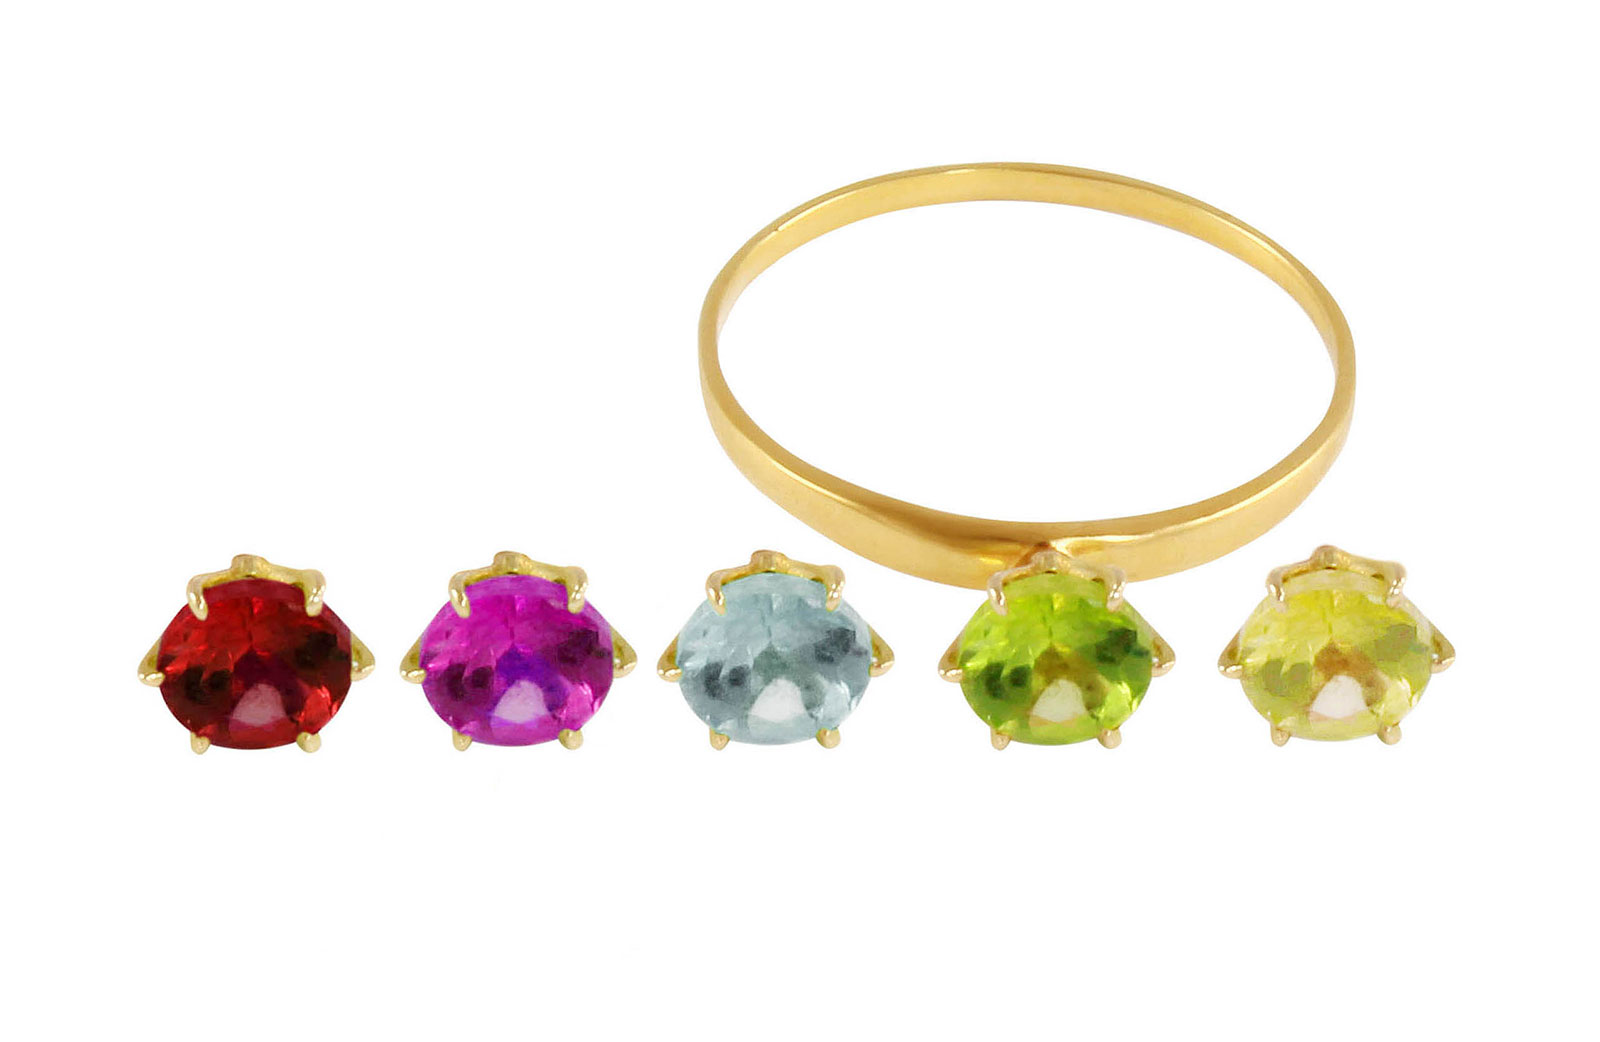 Vera Perla 18K  Yellow Gold Genuine Gemstones Interchangeable  Solitaire Ring -Size 6 US